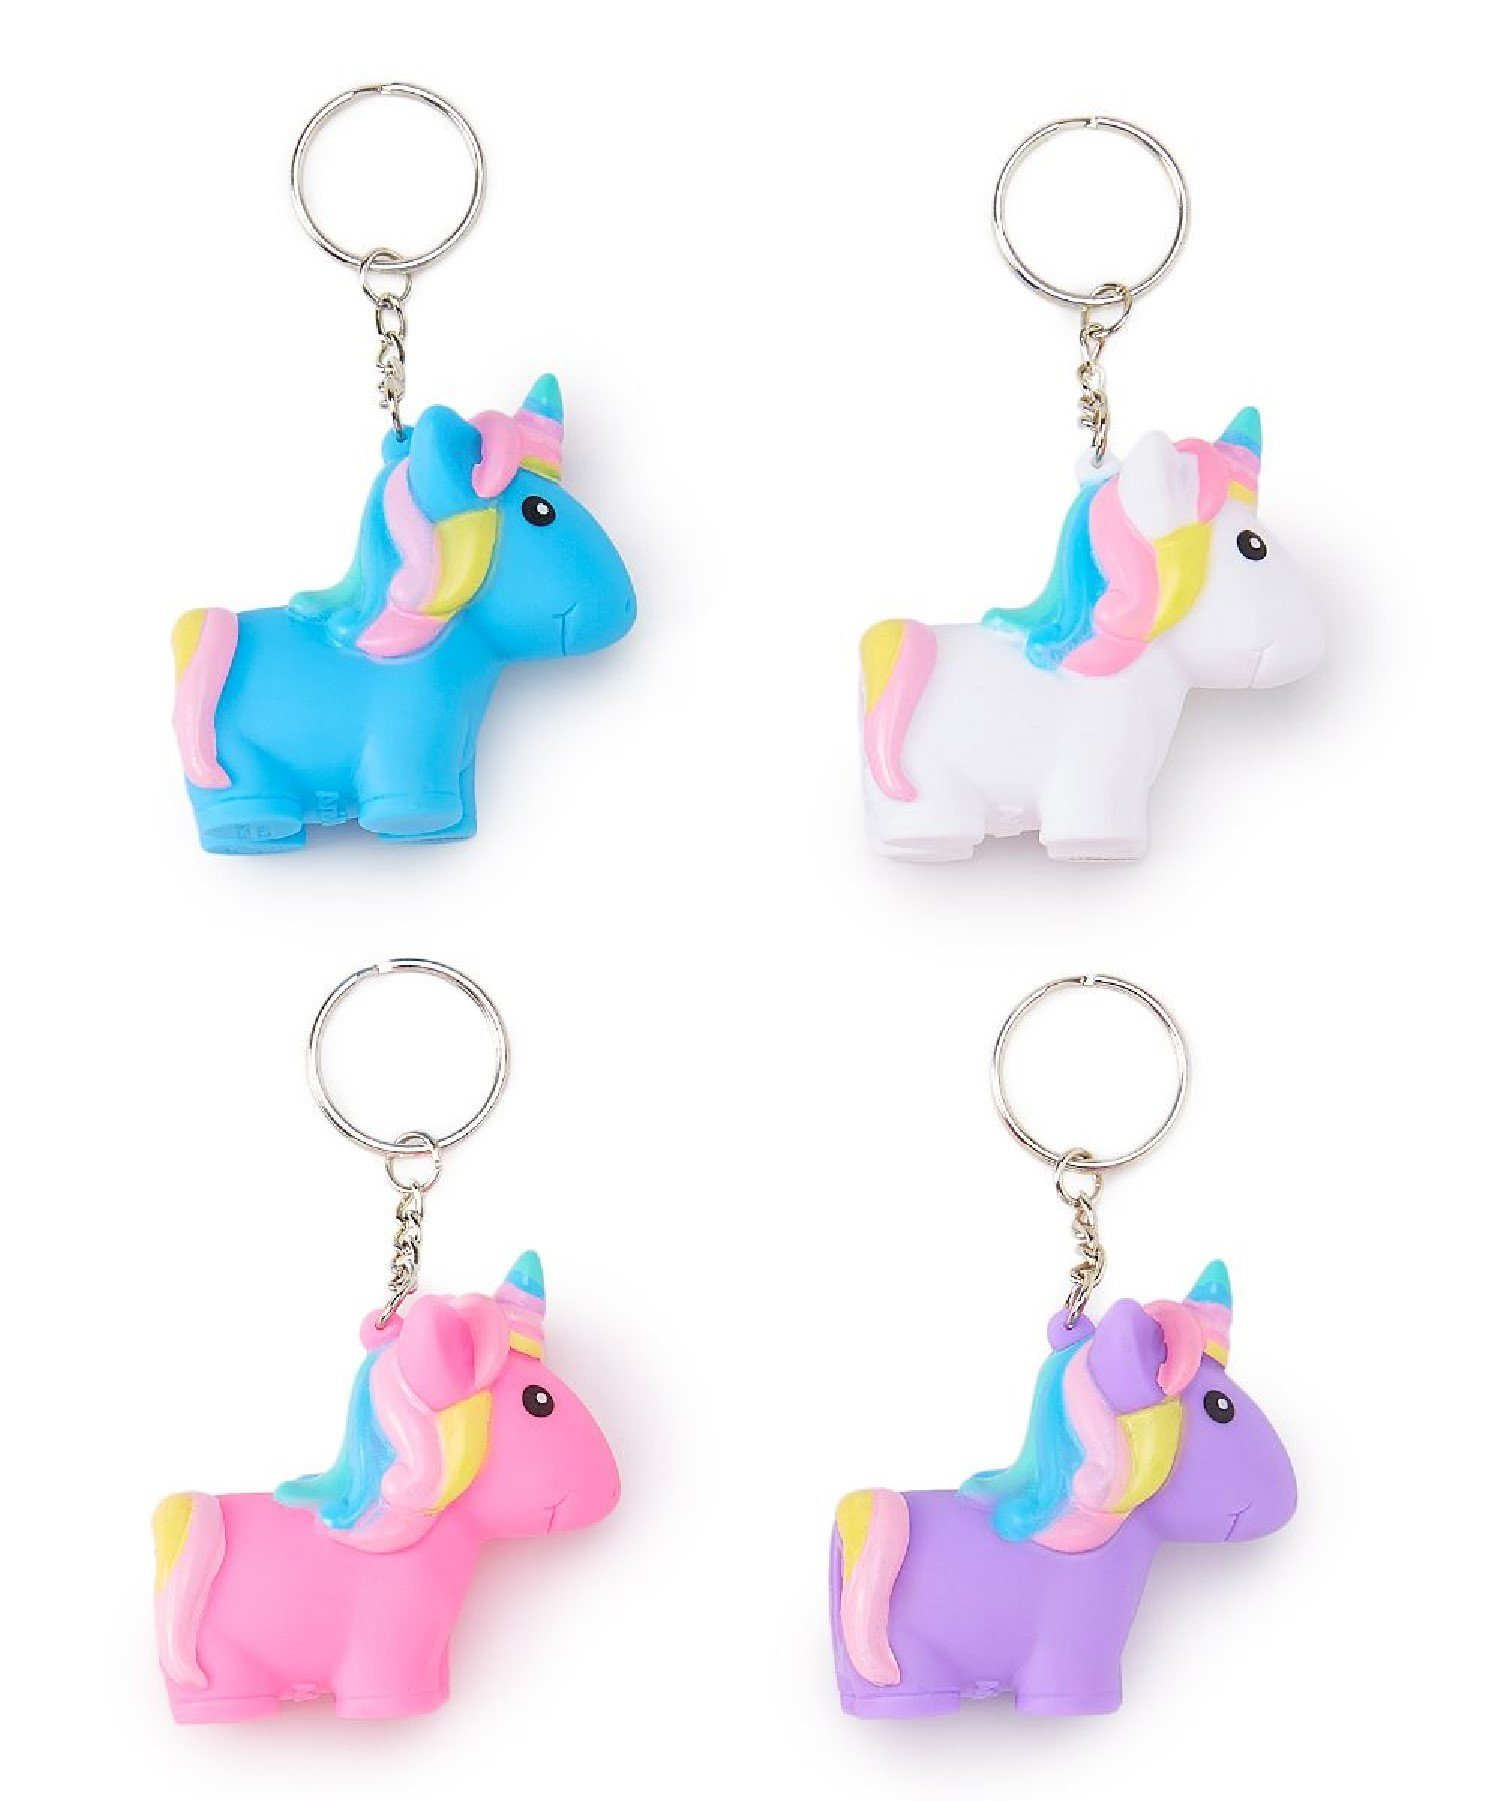 4 Pack Squeeze N Poop Glitter Unicorn Keychain - White, Pink, Blue & Purple